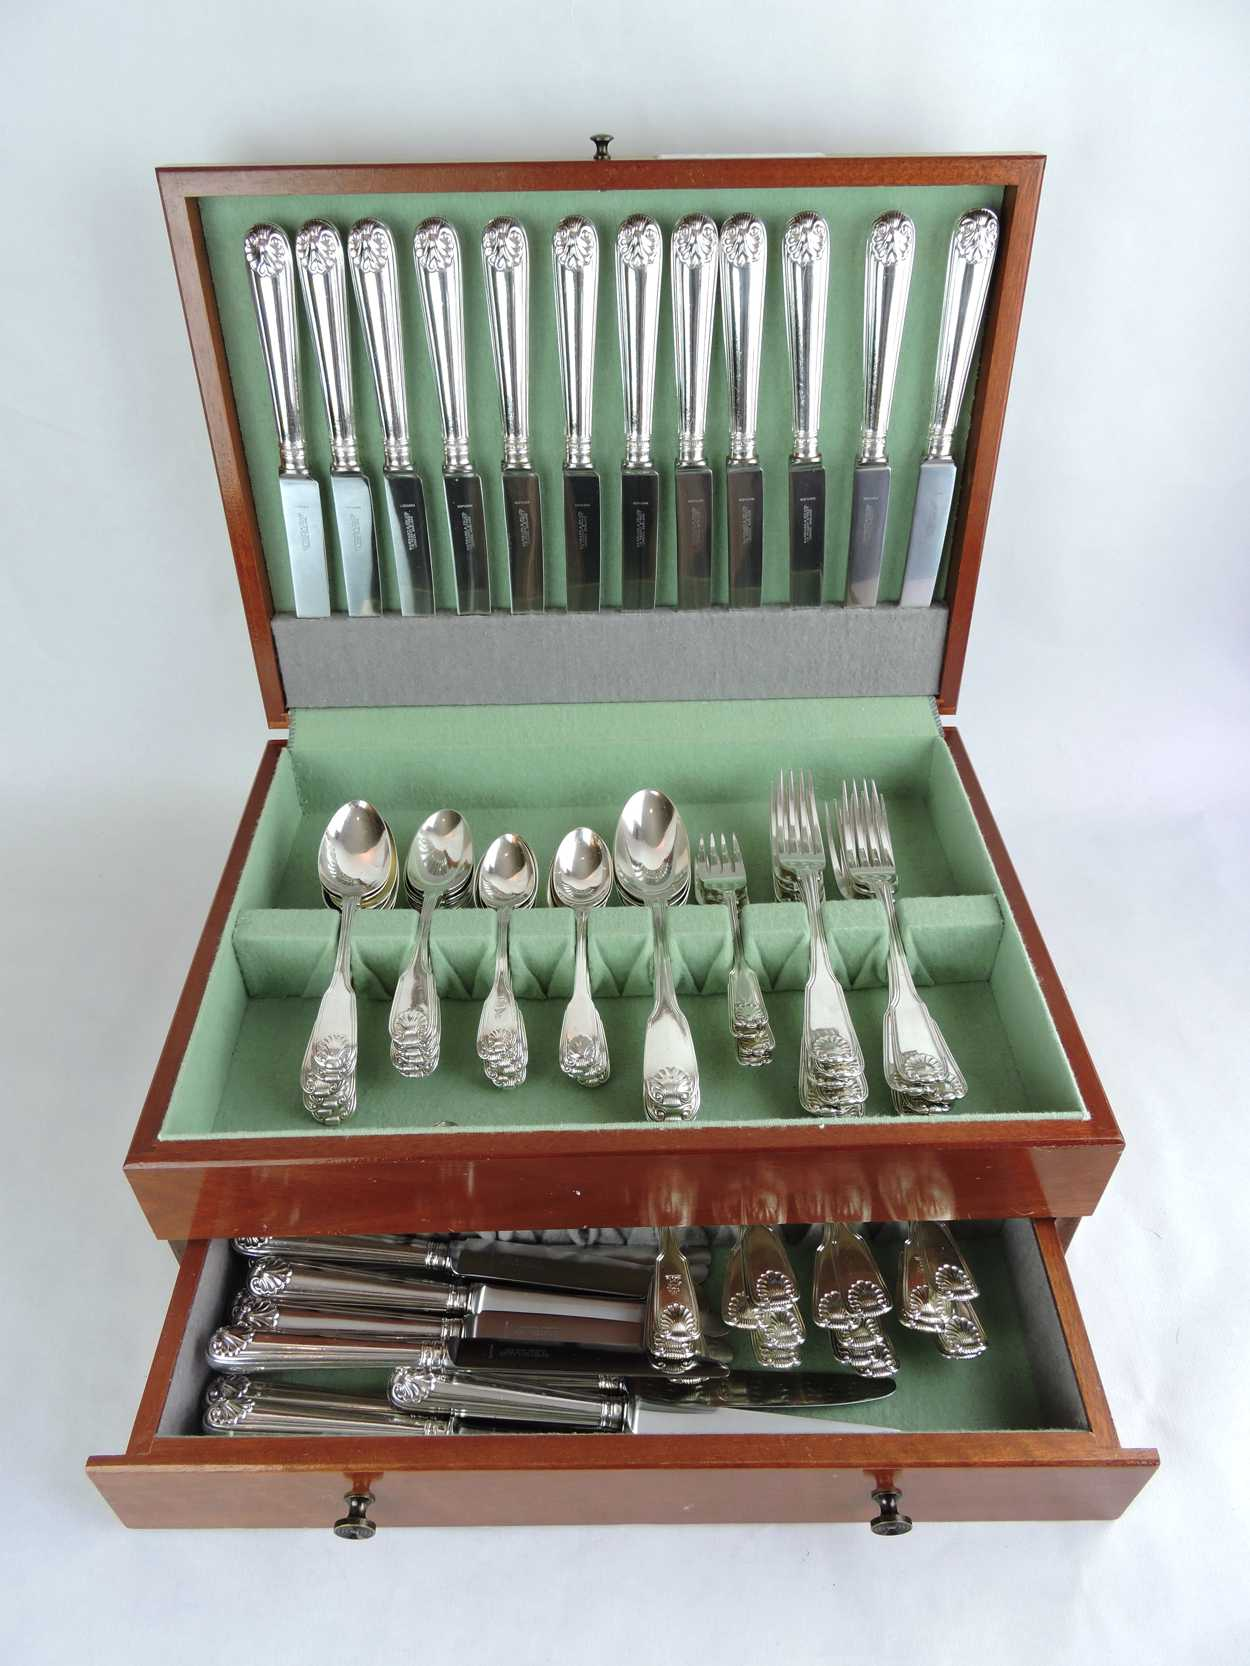 Help with dating Elkington & Co. silverware - The eBay Community